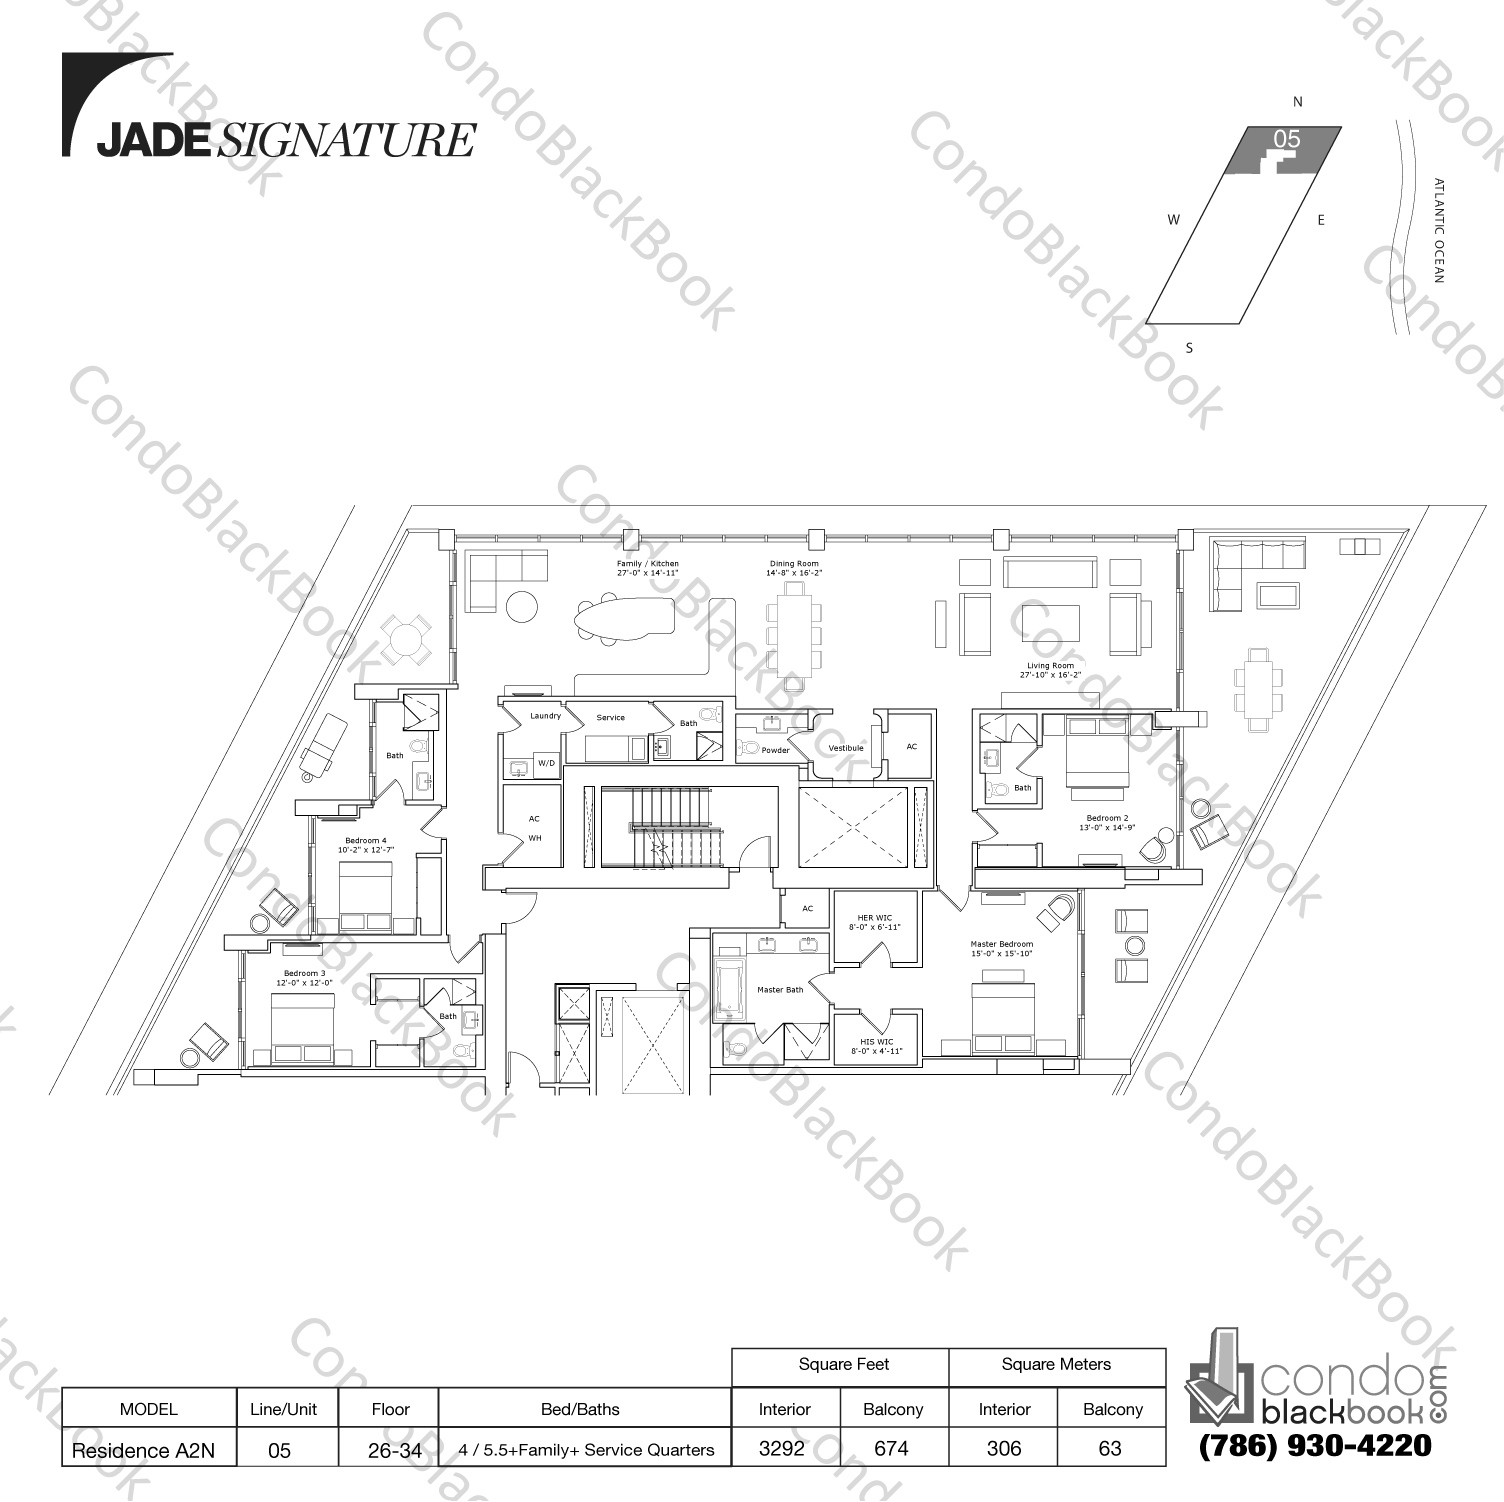 Floor plan for Jade Signature Sunny Isles Beach, model Residence A2N, line 05, 4 / 5.5+Family+ Service Quarters bedrooms, 3292 sq ft